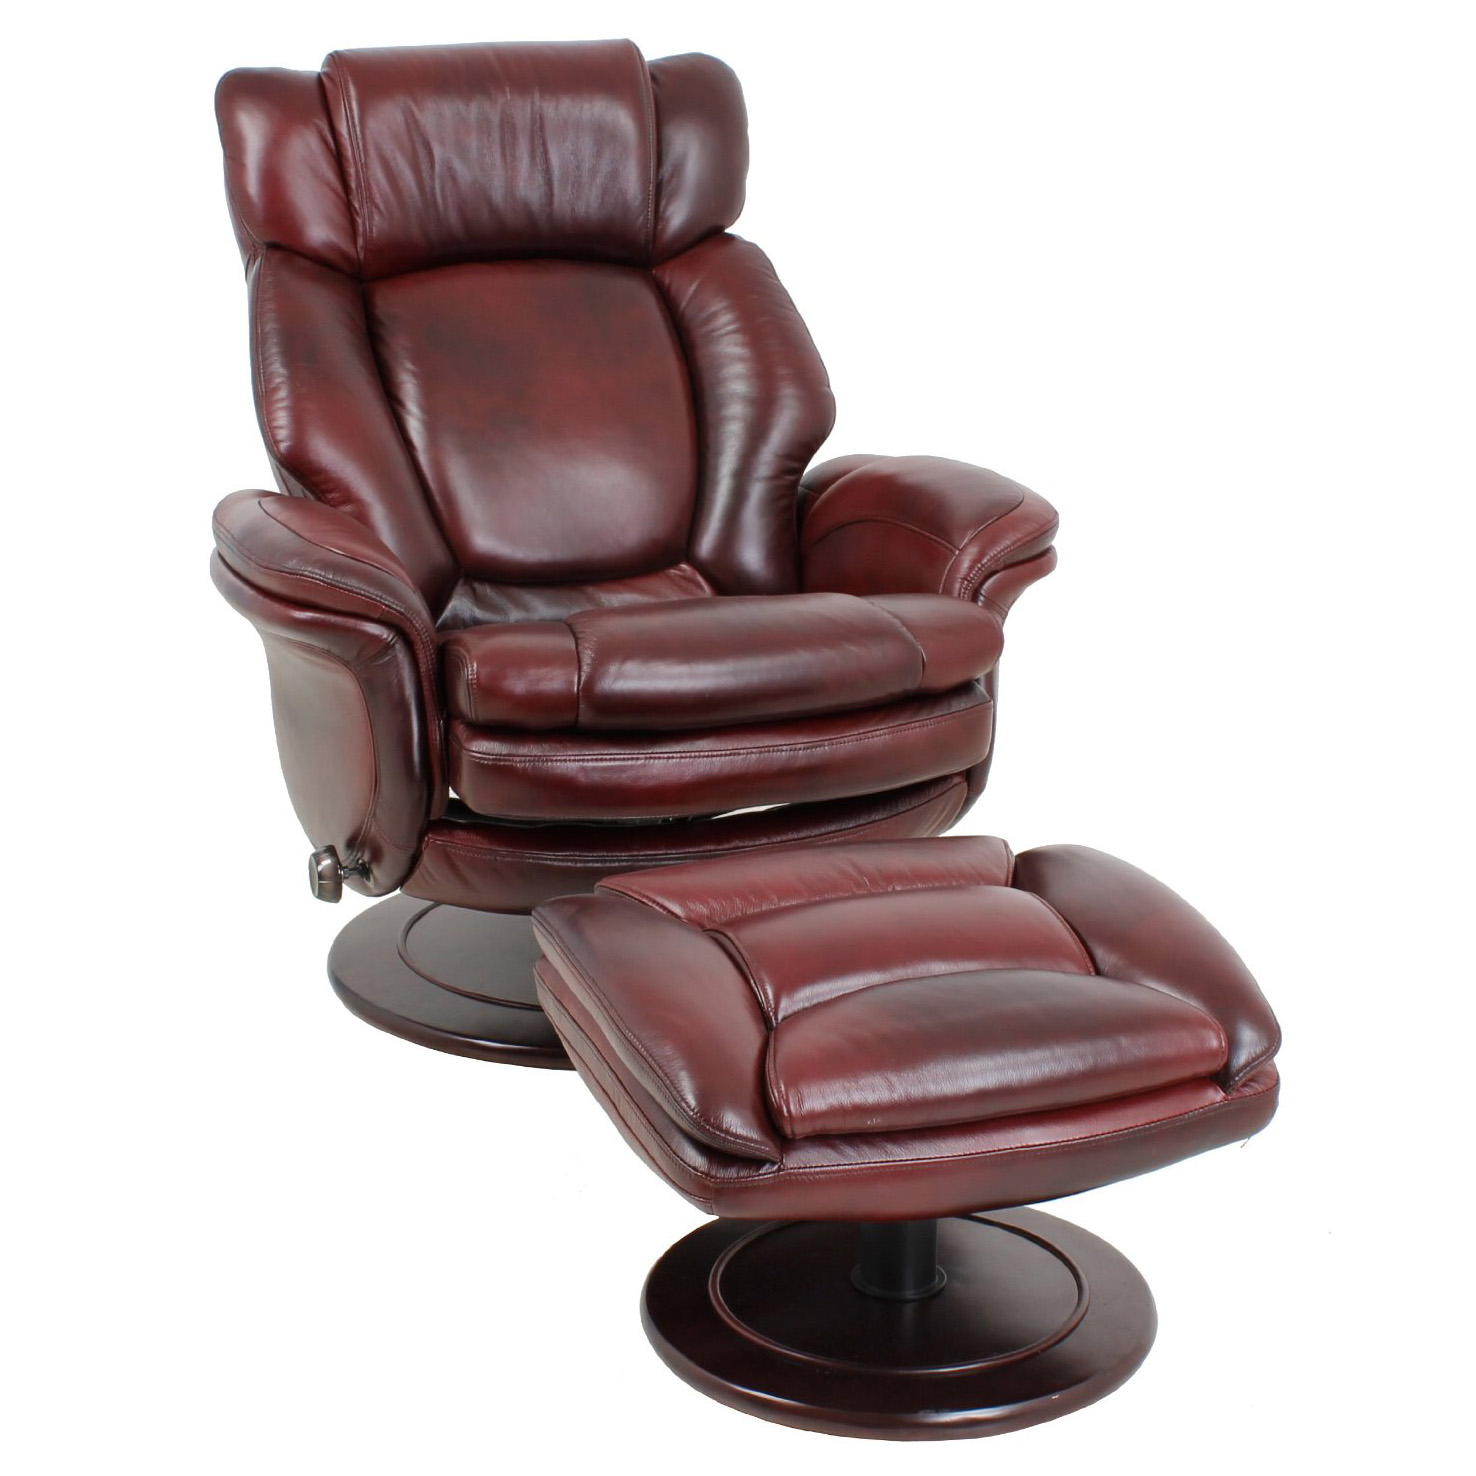 office recliners. Barcalounger Lumina II Leather Recliner Chair And Ottoman Office Recliners M